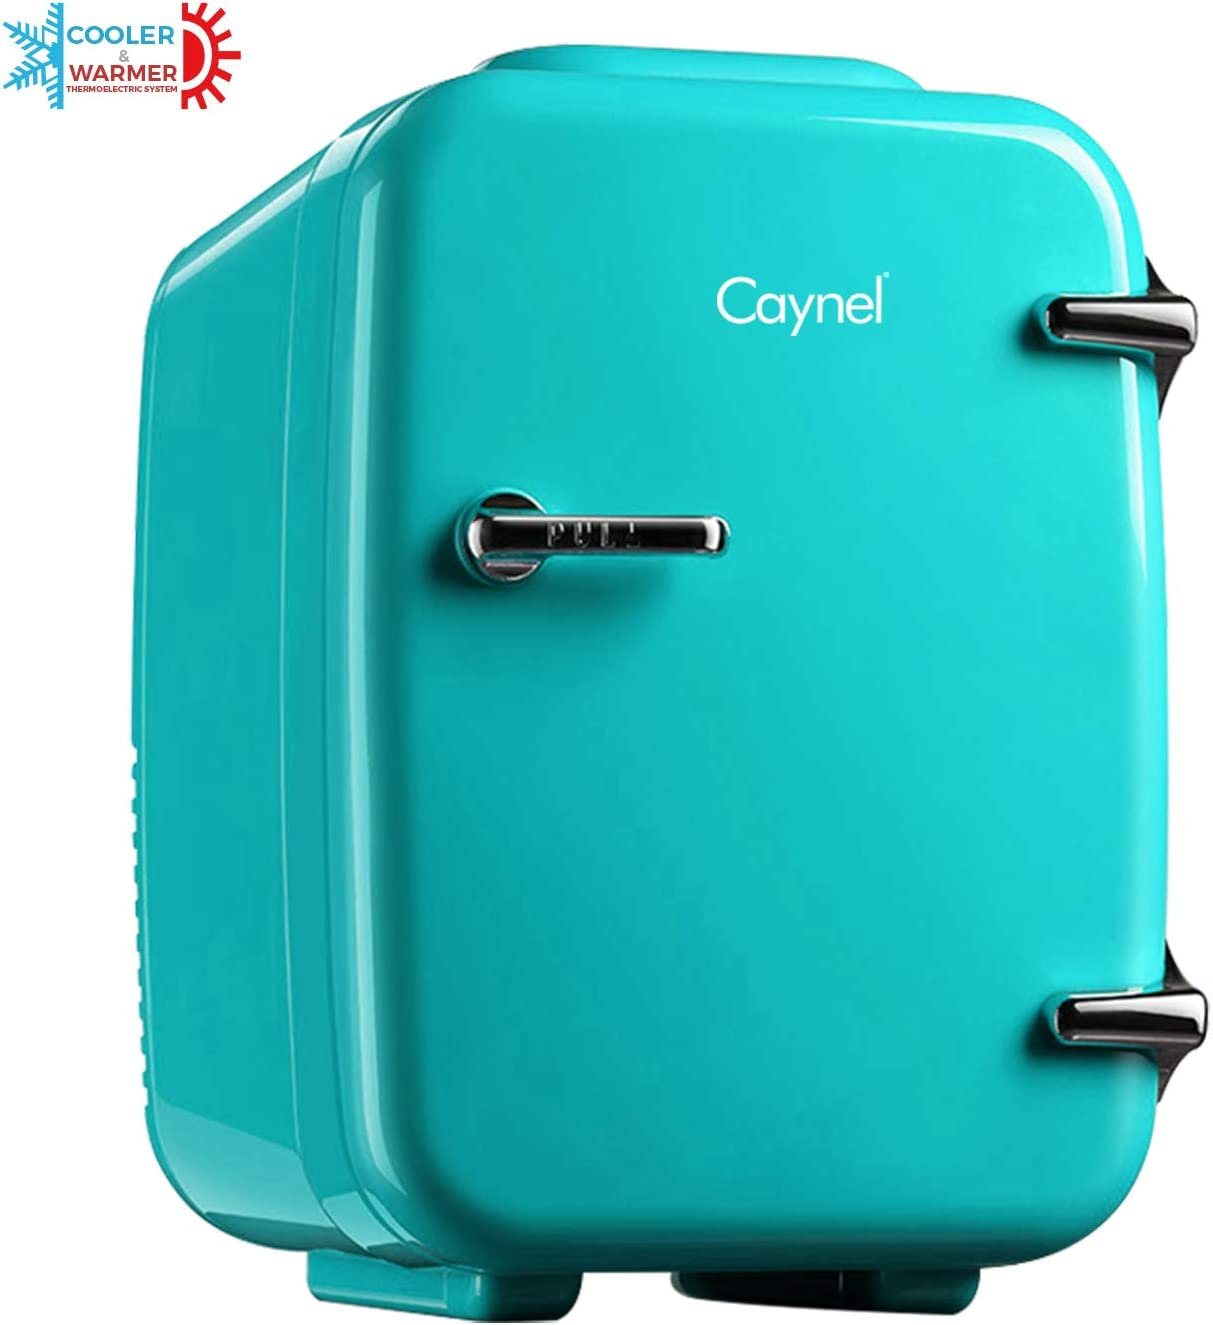 CAYNEL Mini Fridge Cooler and Warmer, (4Liter / 6Can) Portable Compact Personal Fridge, AC/DC Thermoelectric System, 100% Freon-Free Eco Friendly for Home, Office and Car, Includes 100-Pcs Stickers